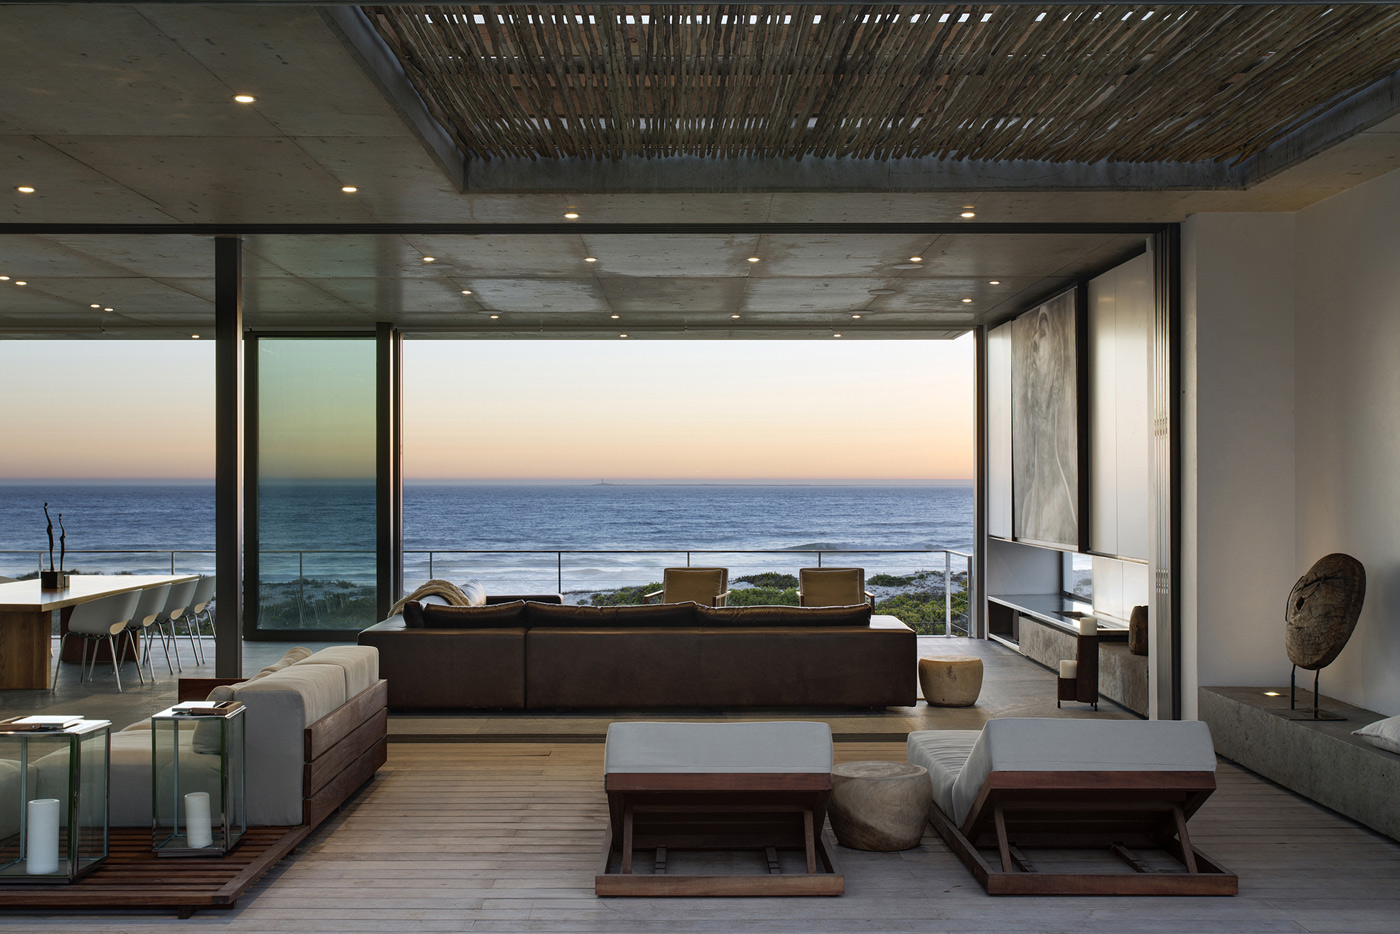 Living Space, Ocean Views, Holiday Home in Yzerfontein, South Africa